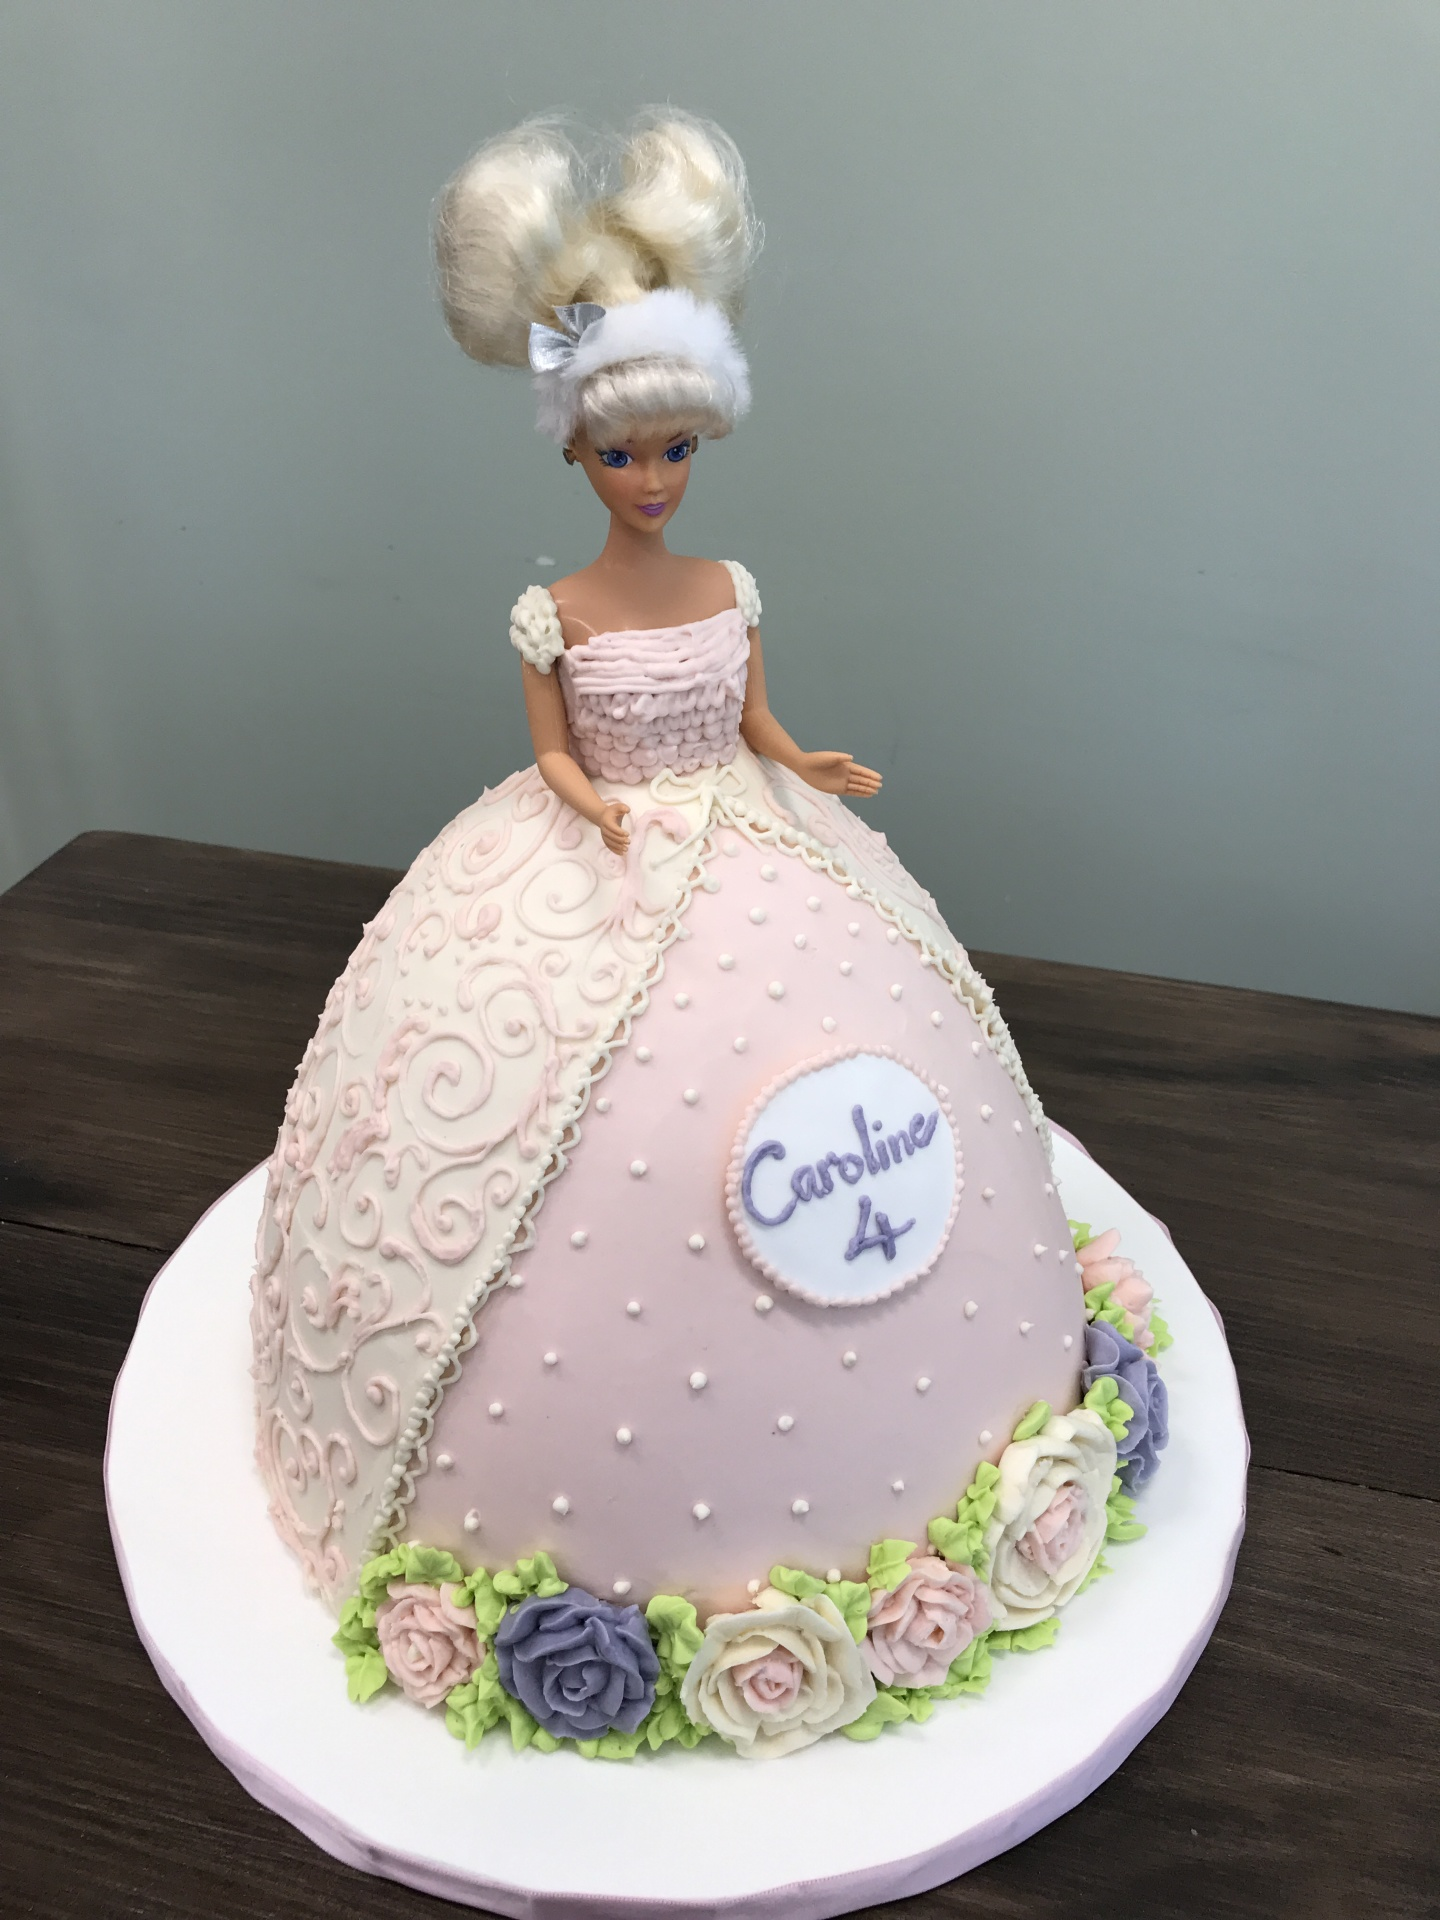 All buttercream Doll Dress Cake Custom Cakes NJ